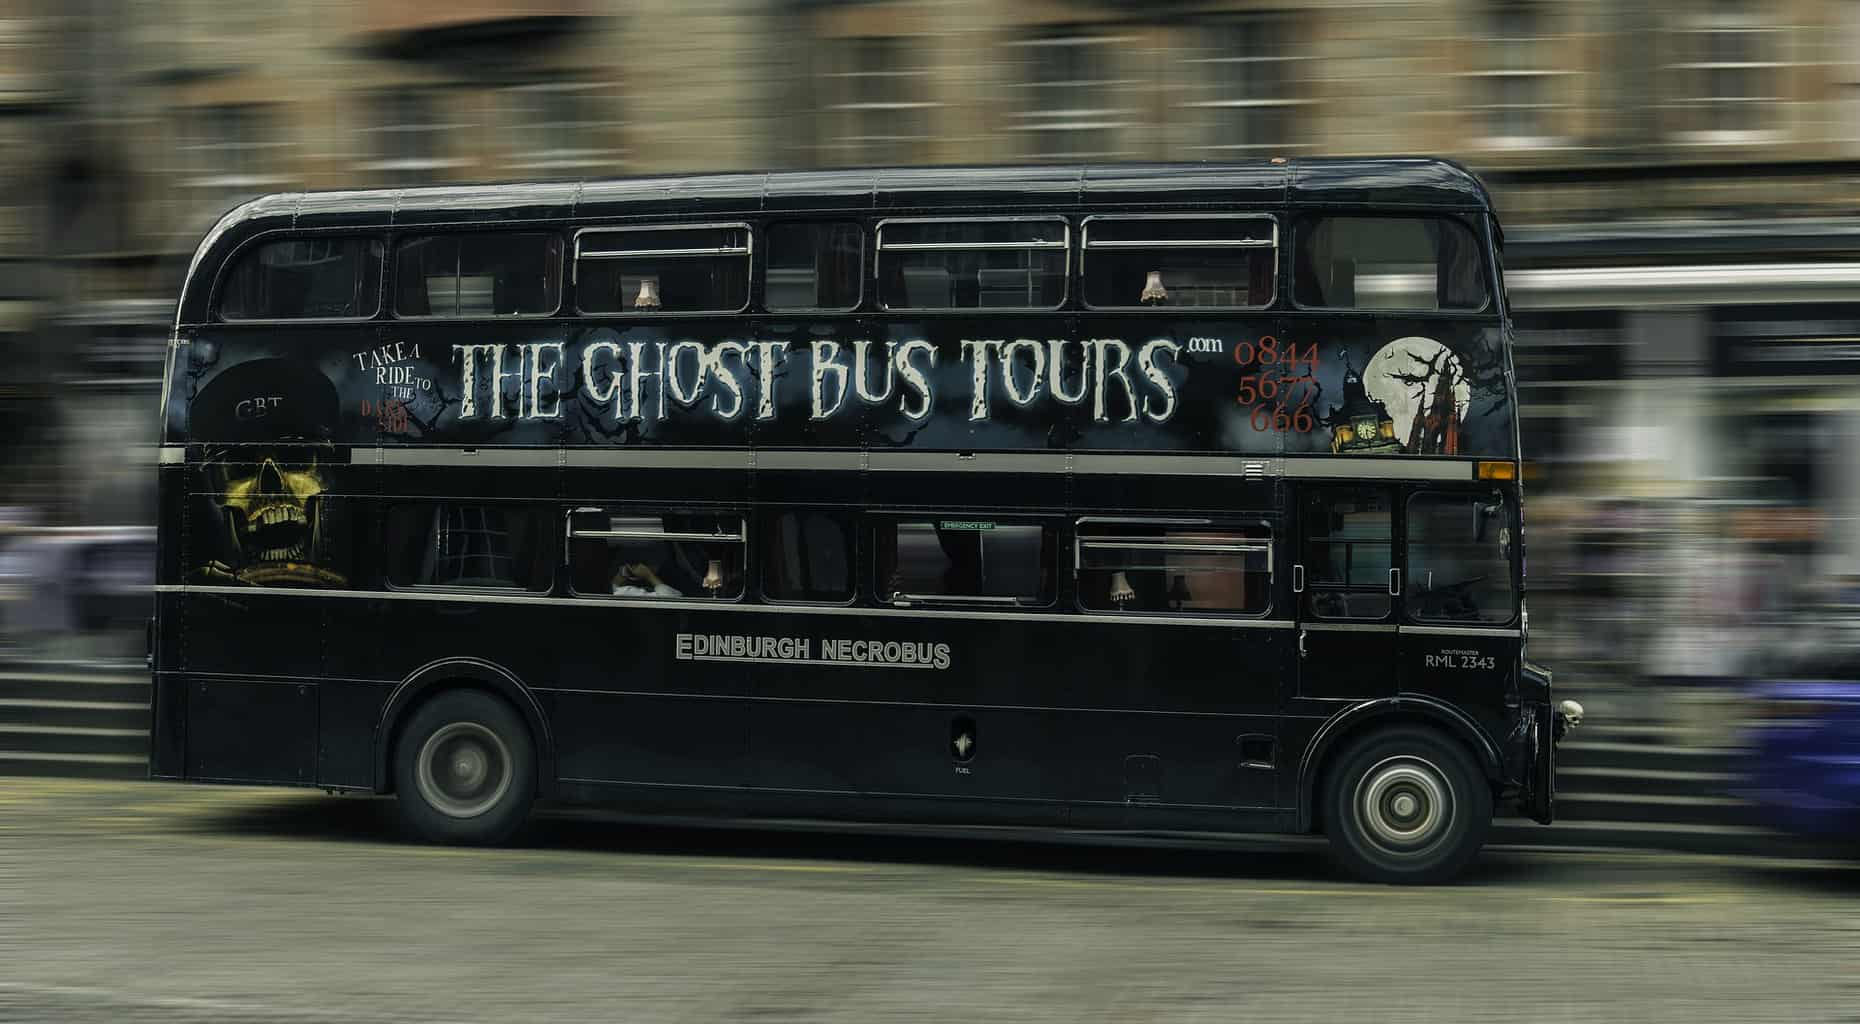 A black bus for ghost tours in Edinburgh